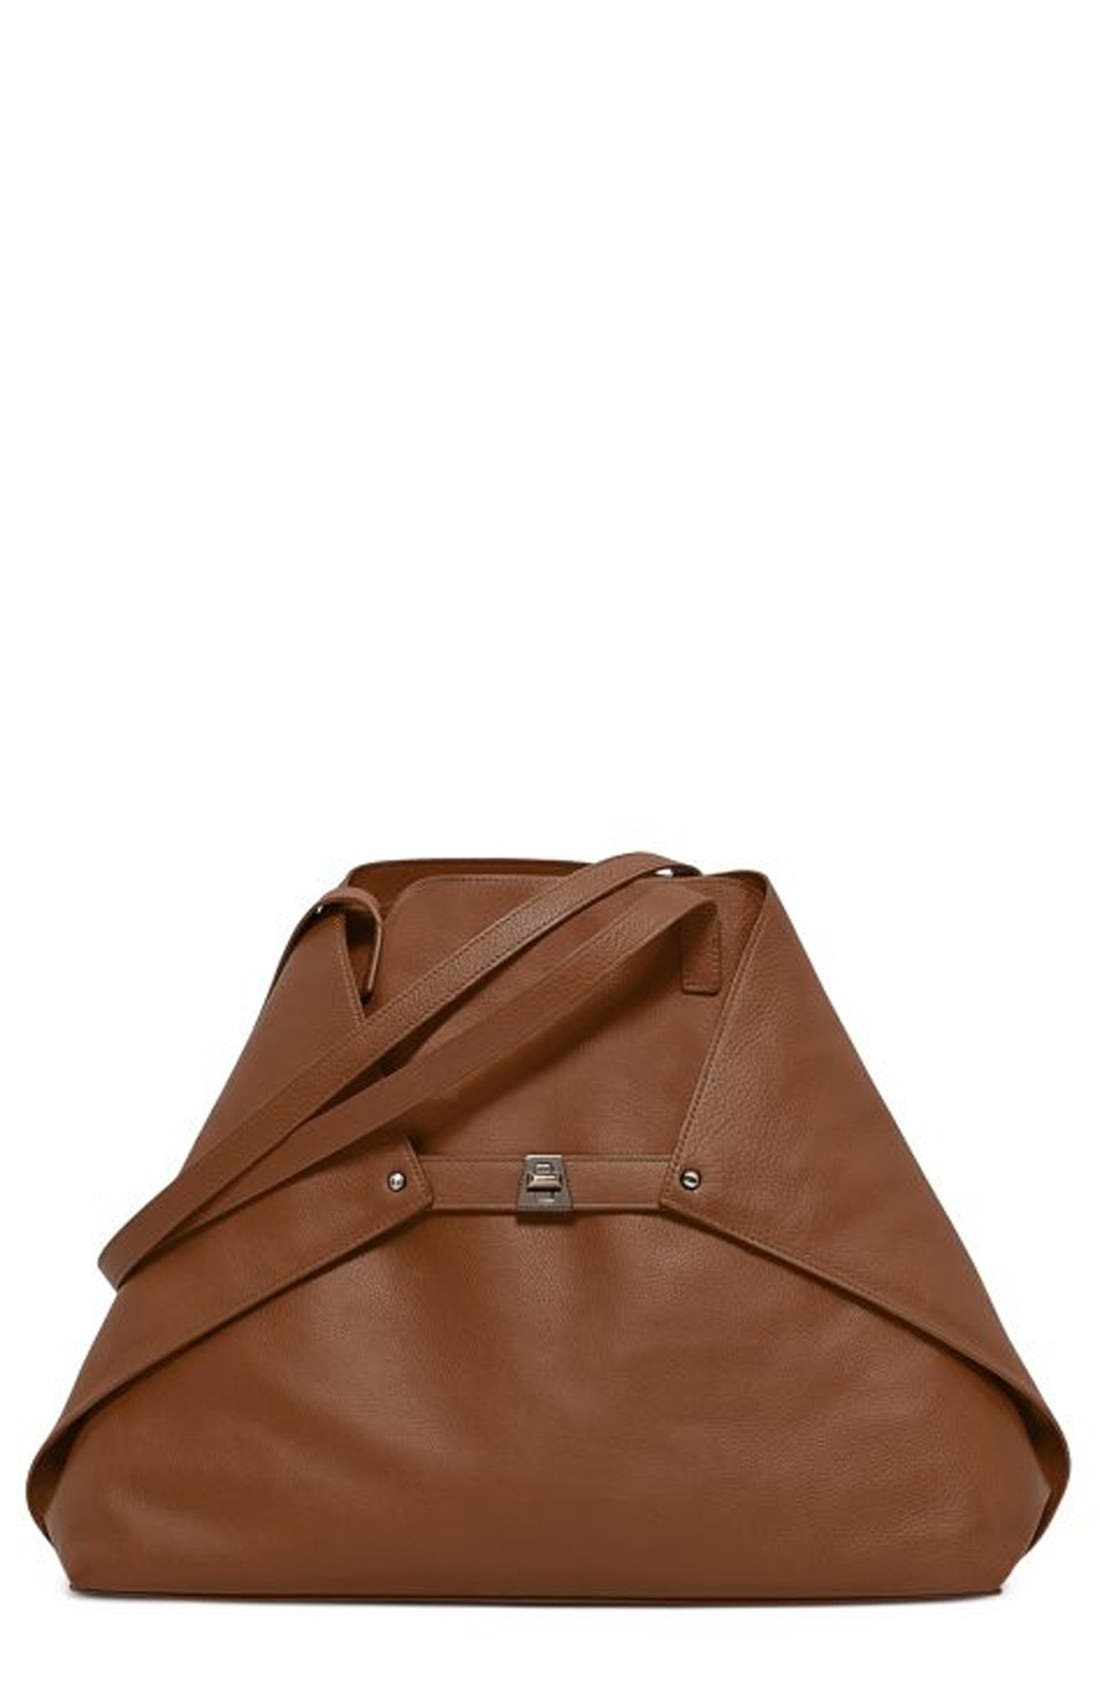 Alternate Image 1 Selected - Akris 'Ai Medium Shoulder Tote' Leather Tote